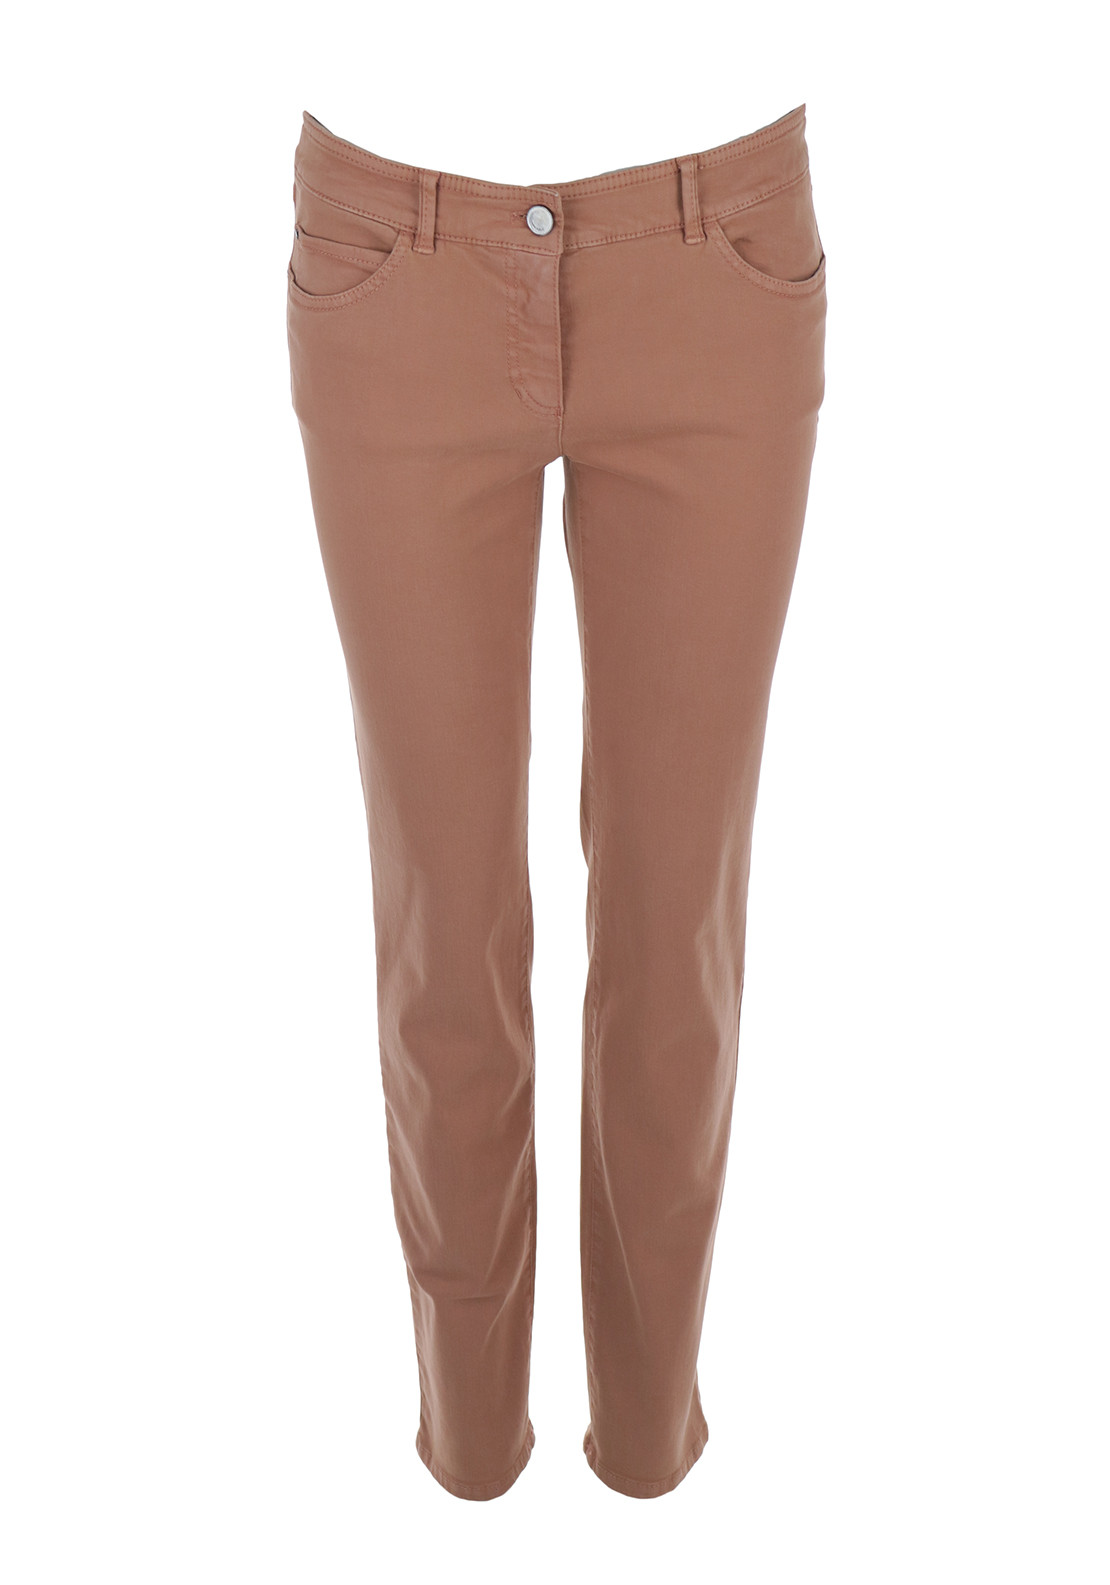 Gerry Weber Straight Leg Jeans, Peach